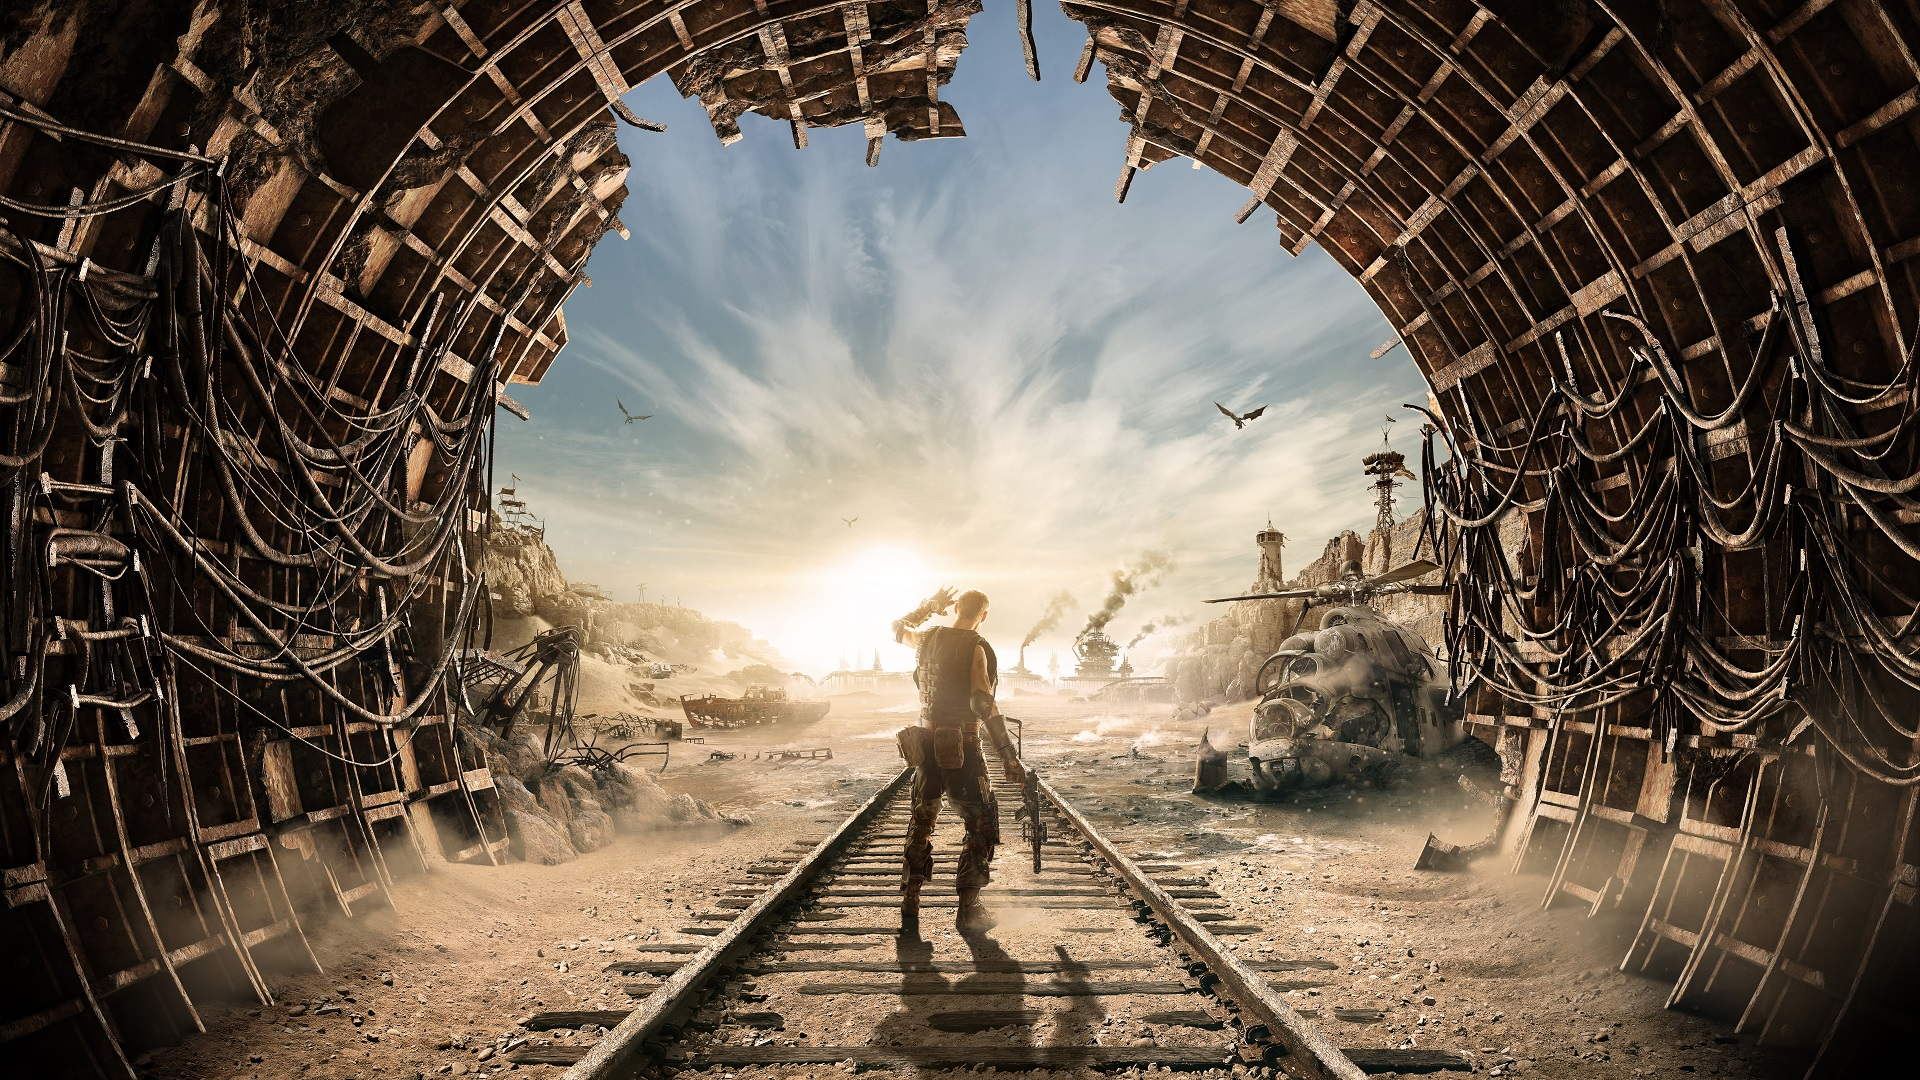 Metro Exodus: Enhanced Edition launches next week, and only runs with ray tracing